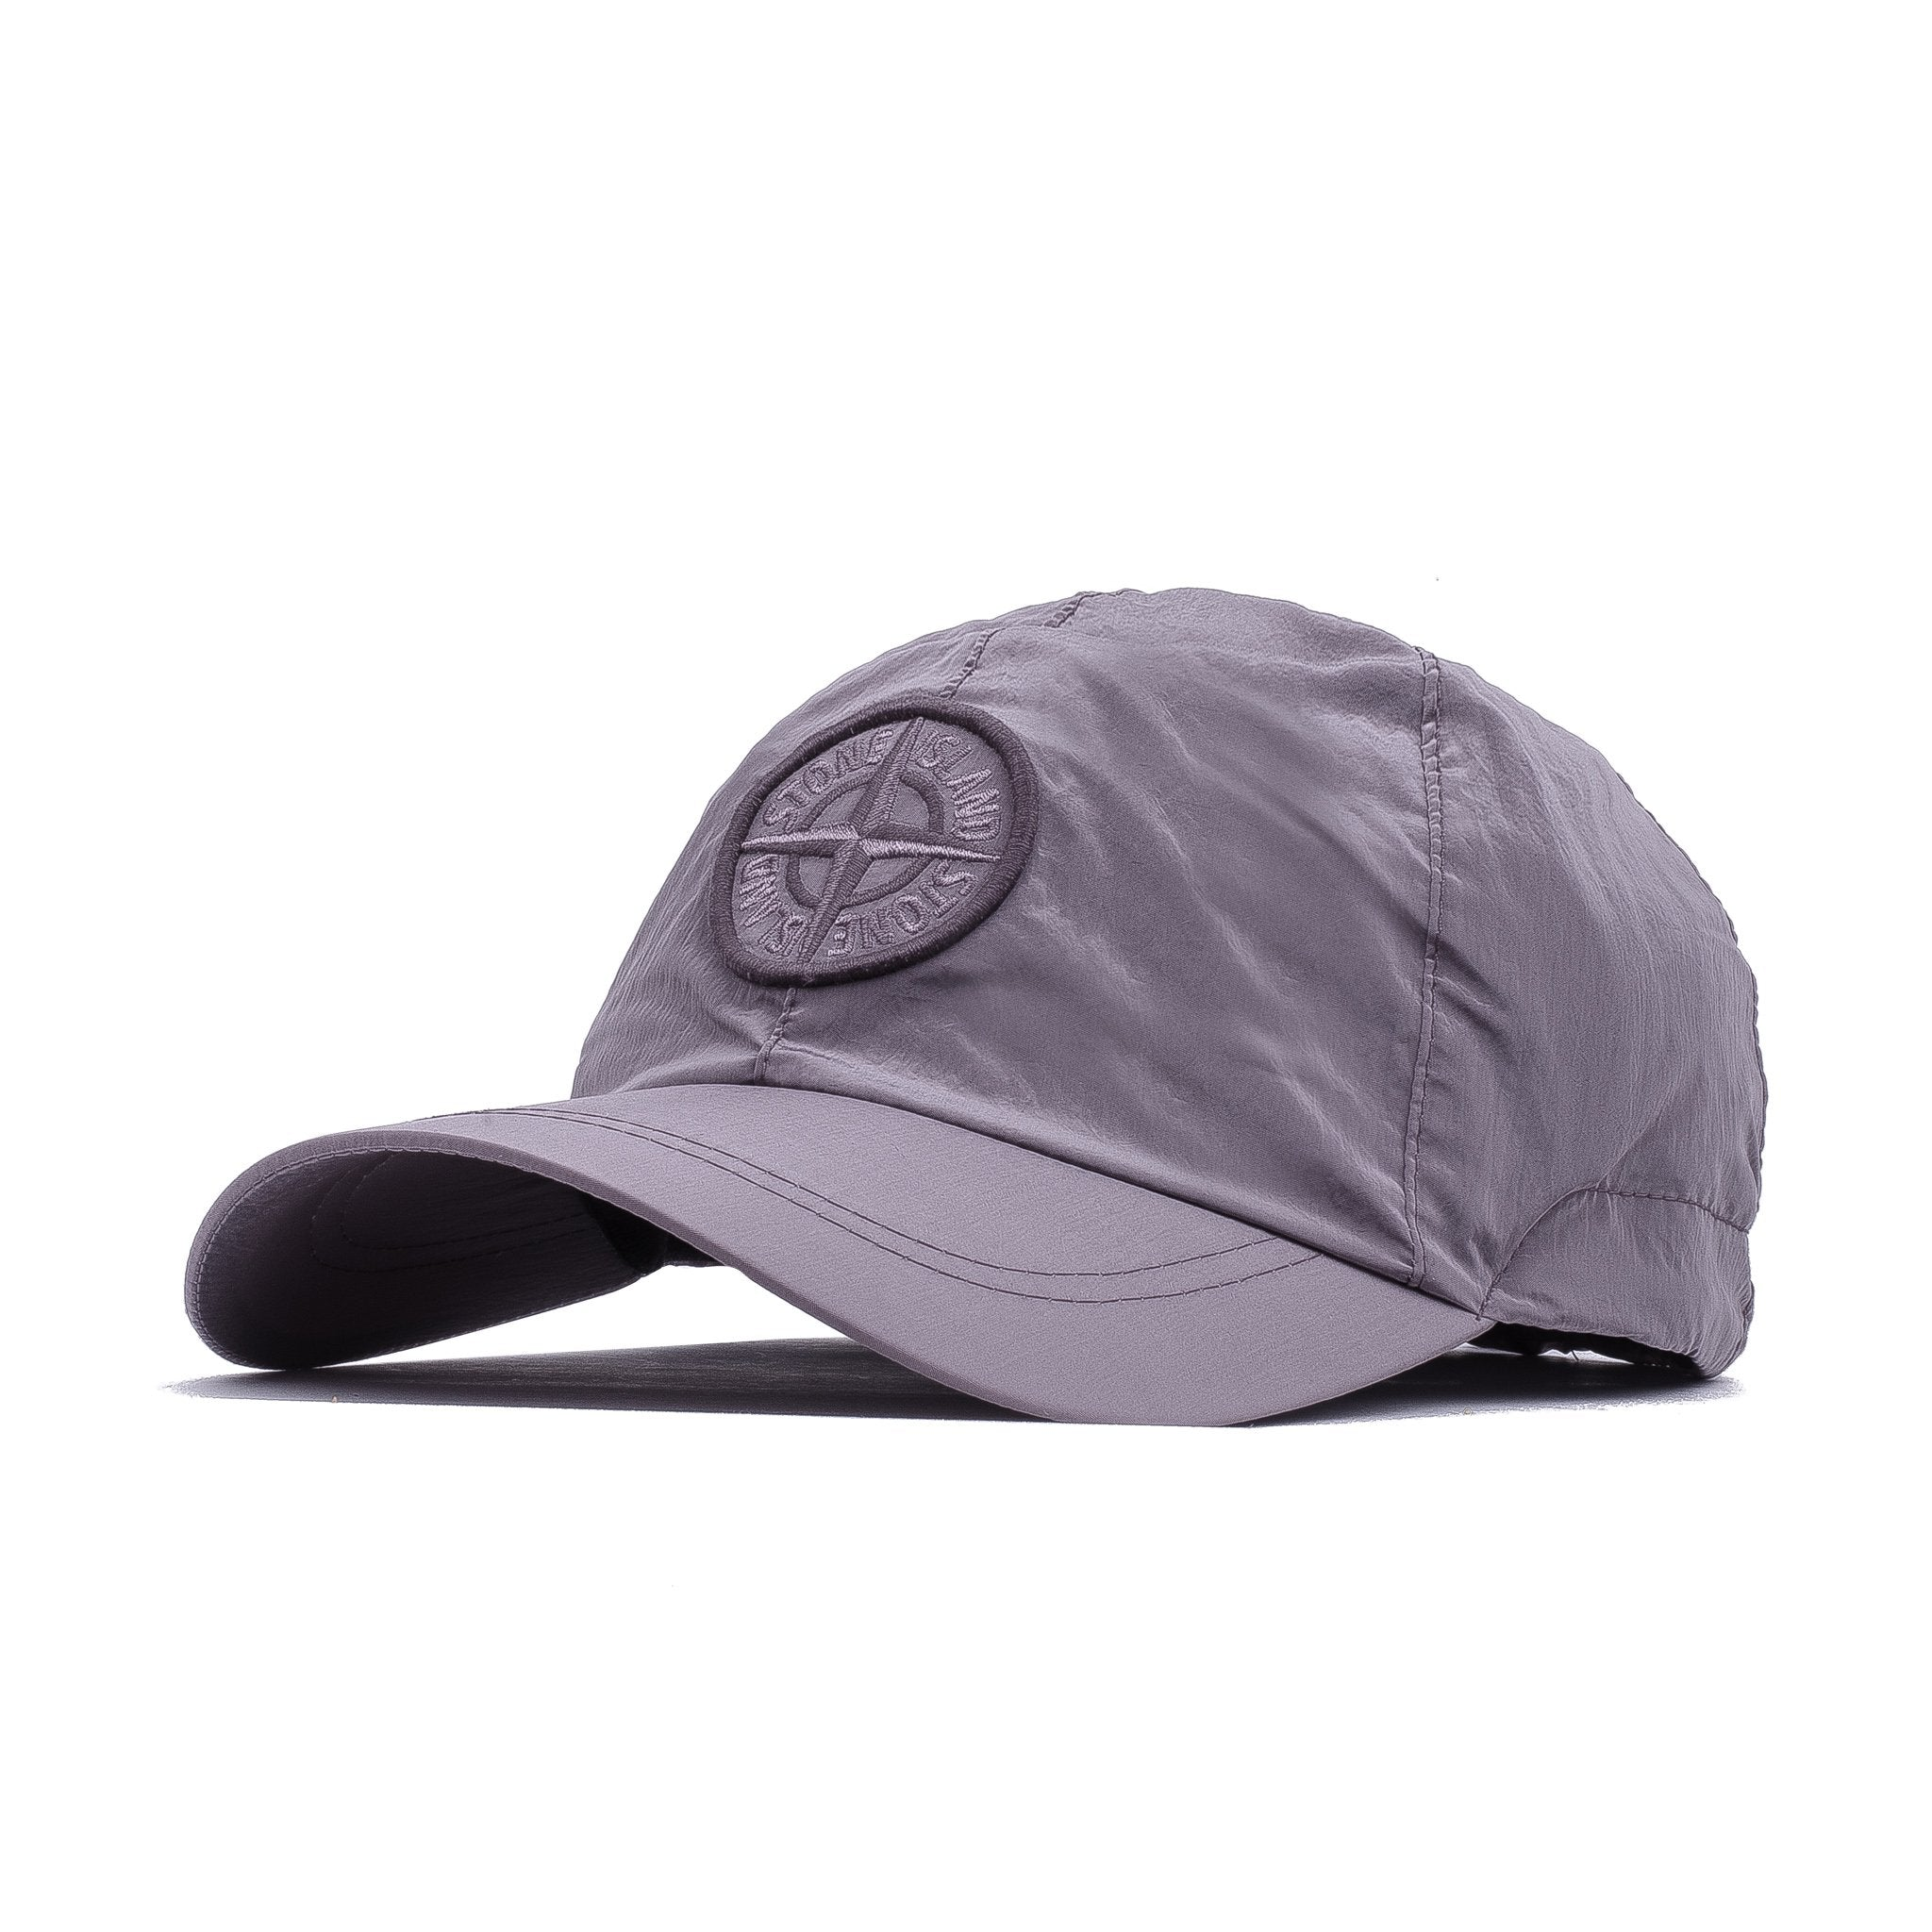 Nylon Metal Cap 691599576 Rose Quartz